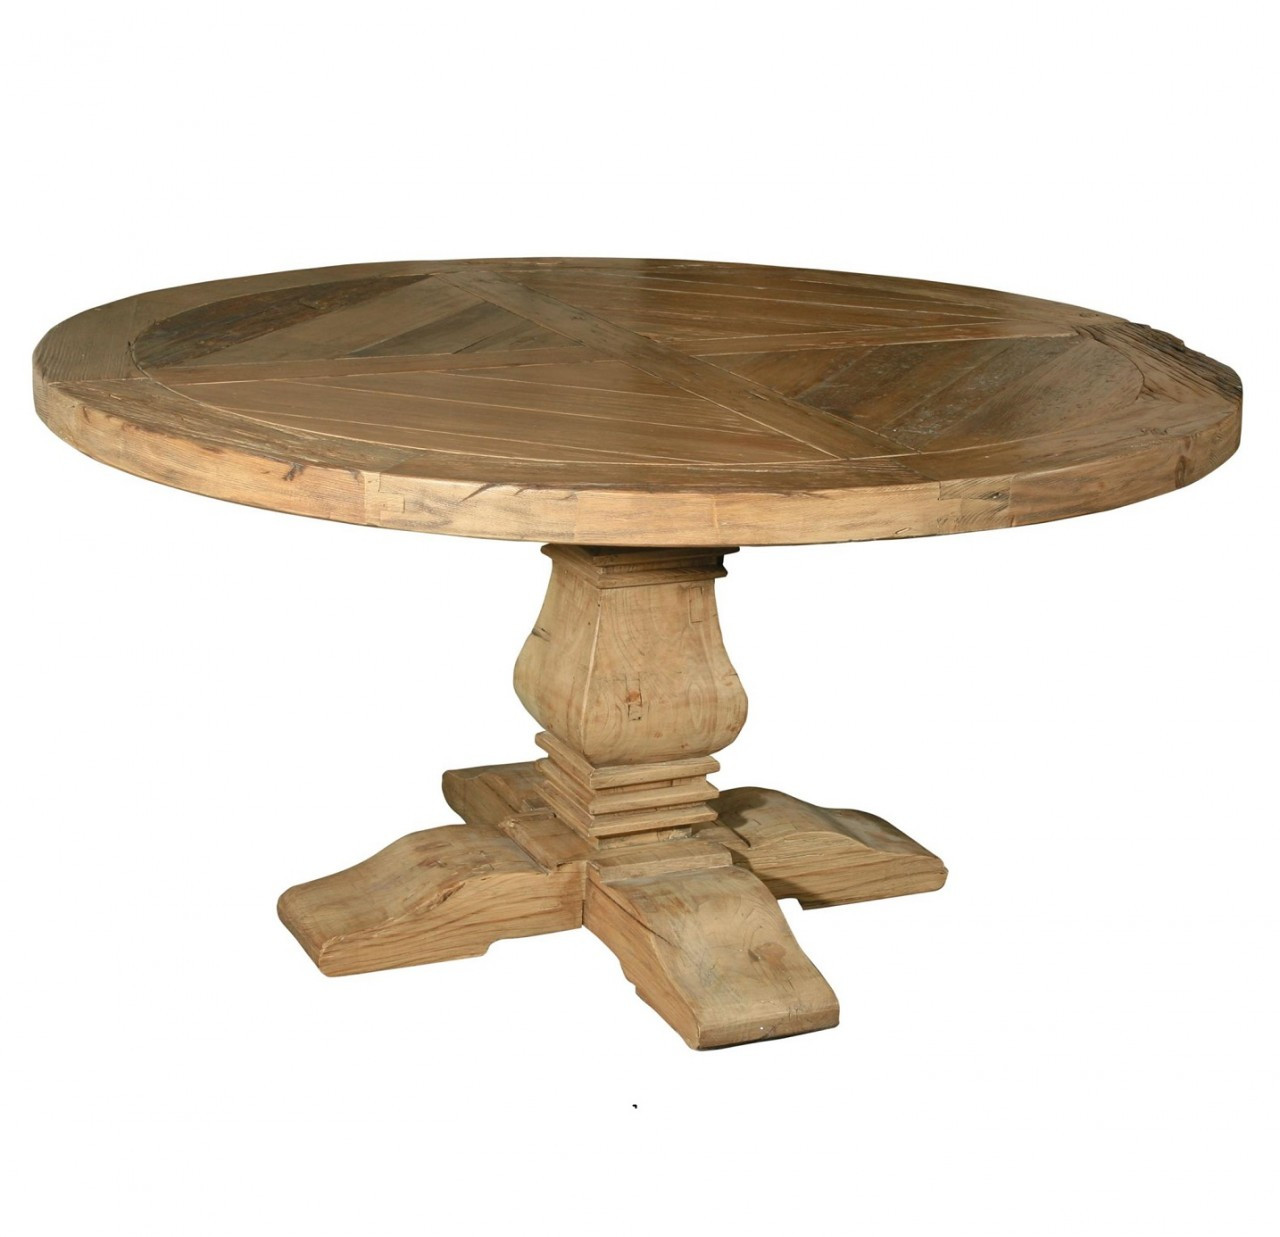 Amazing Wood Round Pedestal Dining Tables 1280 x 1237 · 126 kB · jpeg